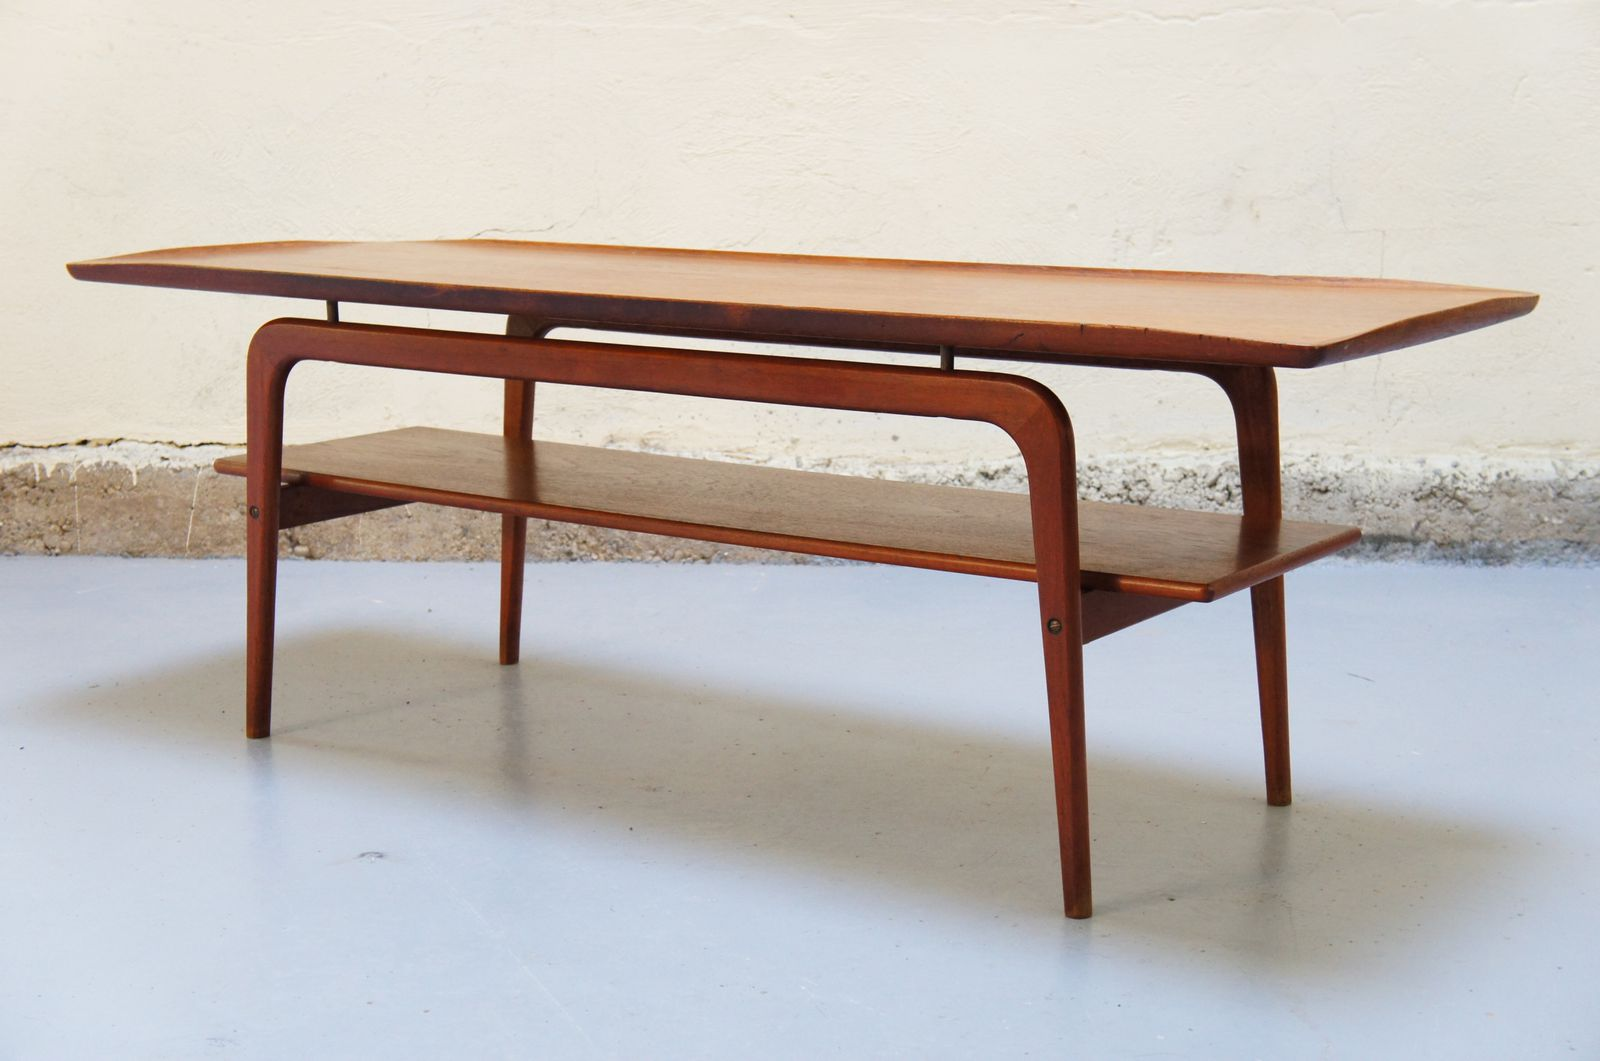 Grande Table Scandinave Vendu Table Basse Scandinave De Salon Teck Danois Années 50 60